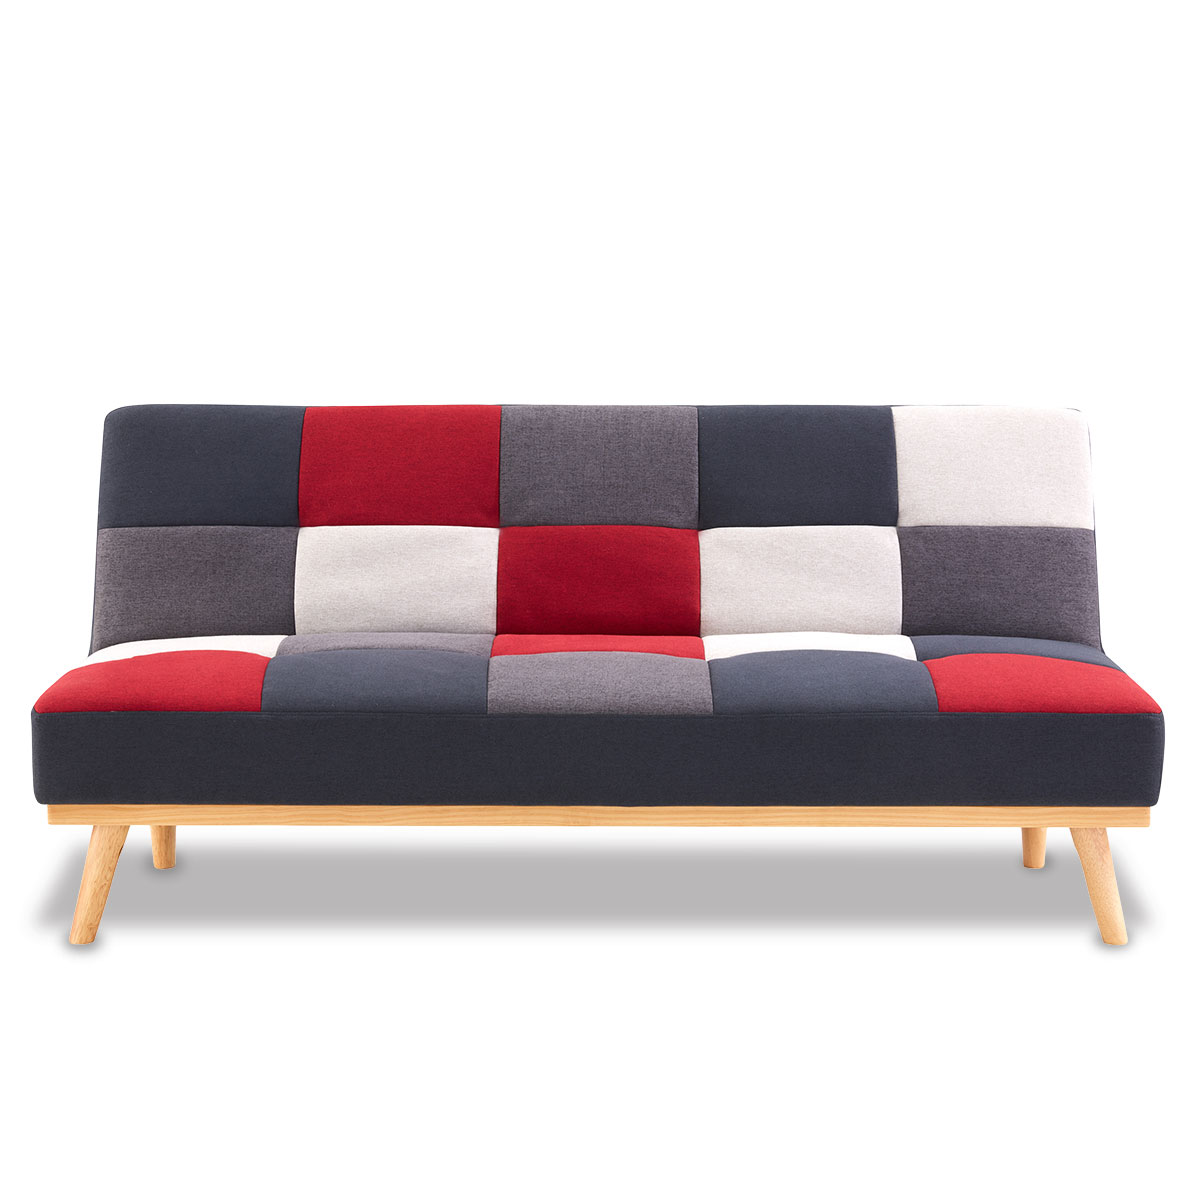 3 Seater Modular Linen Fabric Sofa Bed Couch - Multi-colour